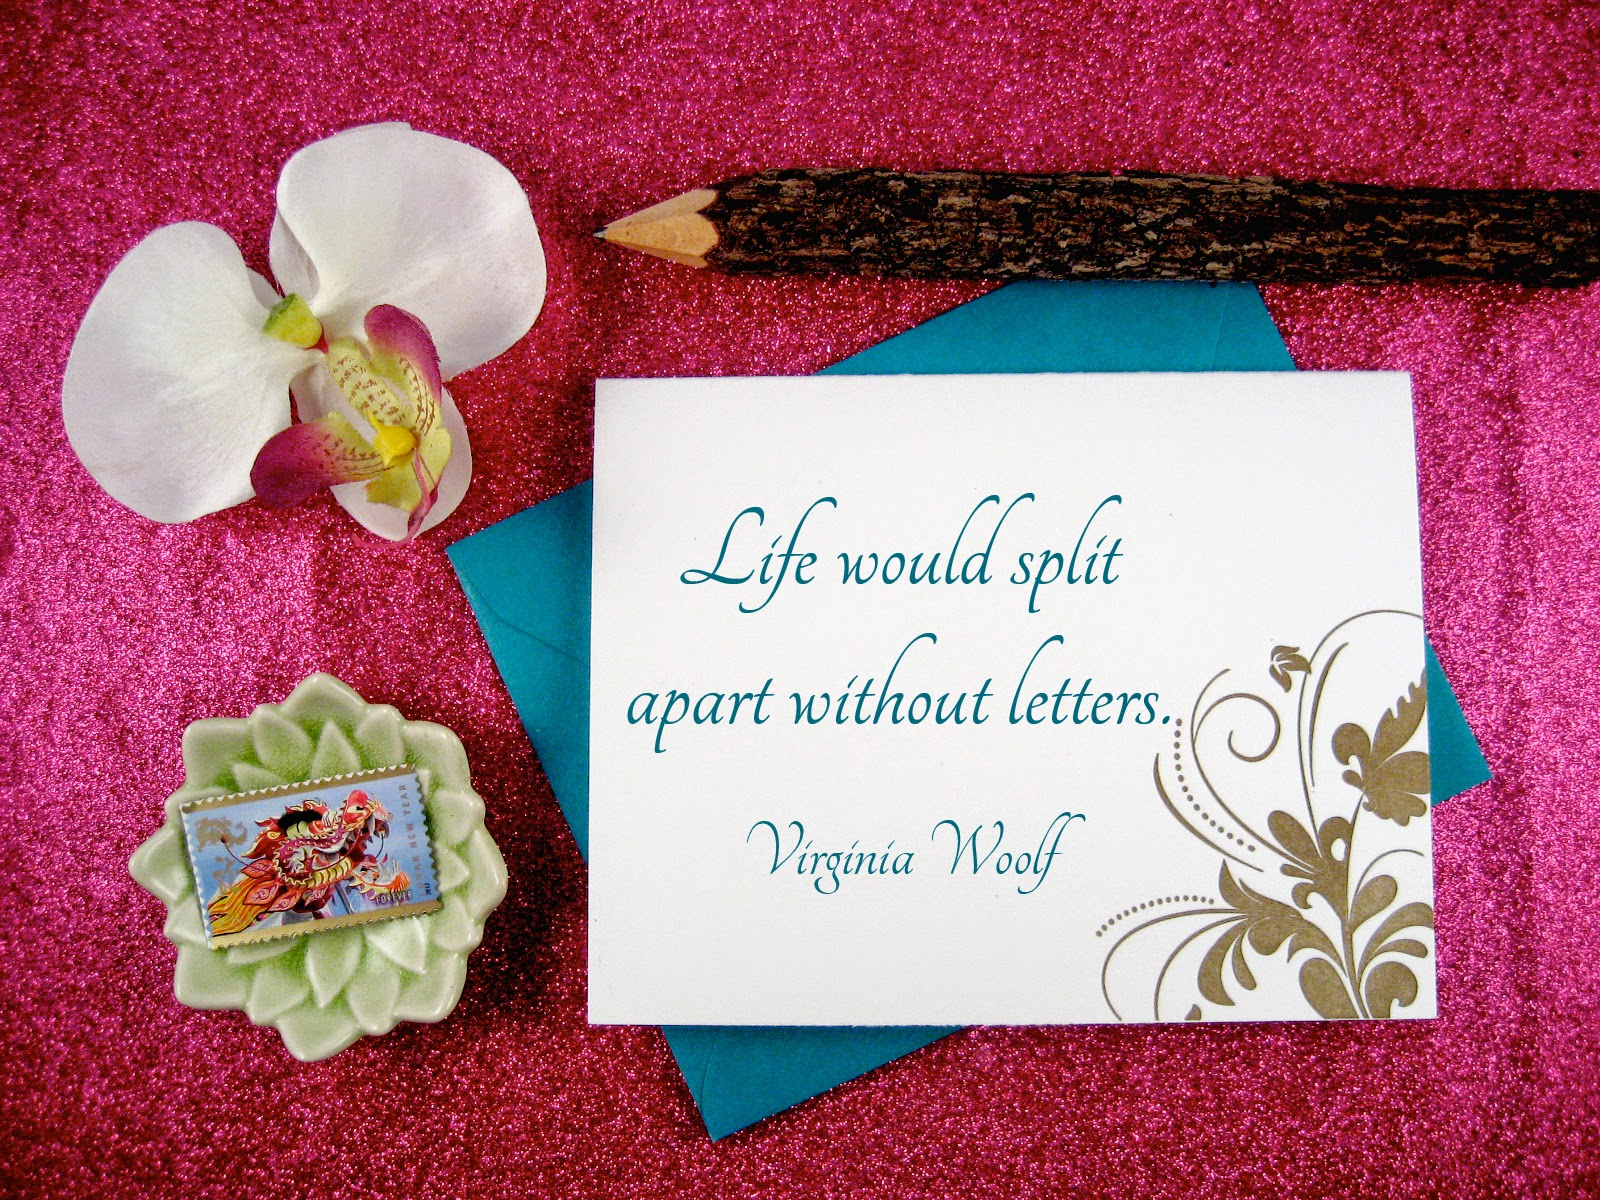 Life would split apart without letters - Virginia Woolf